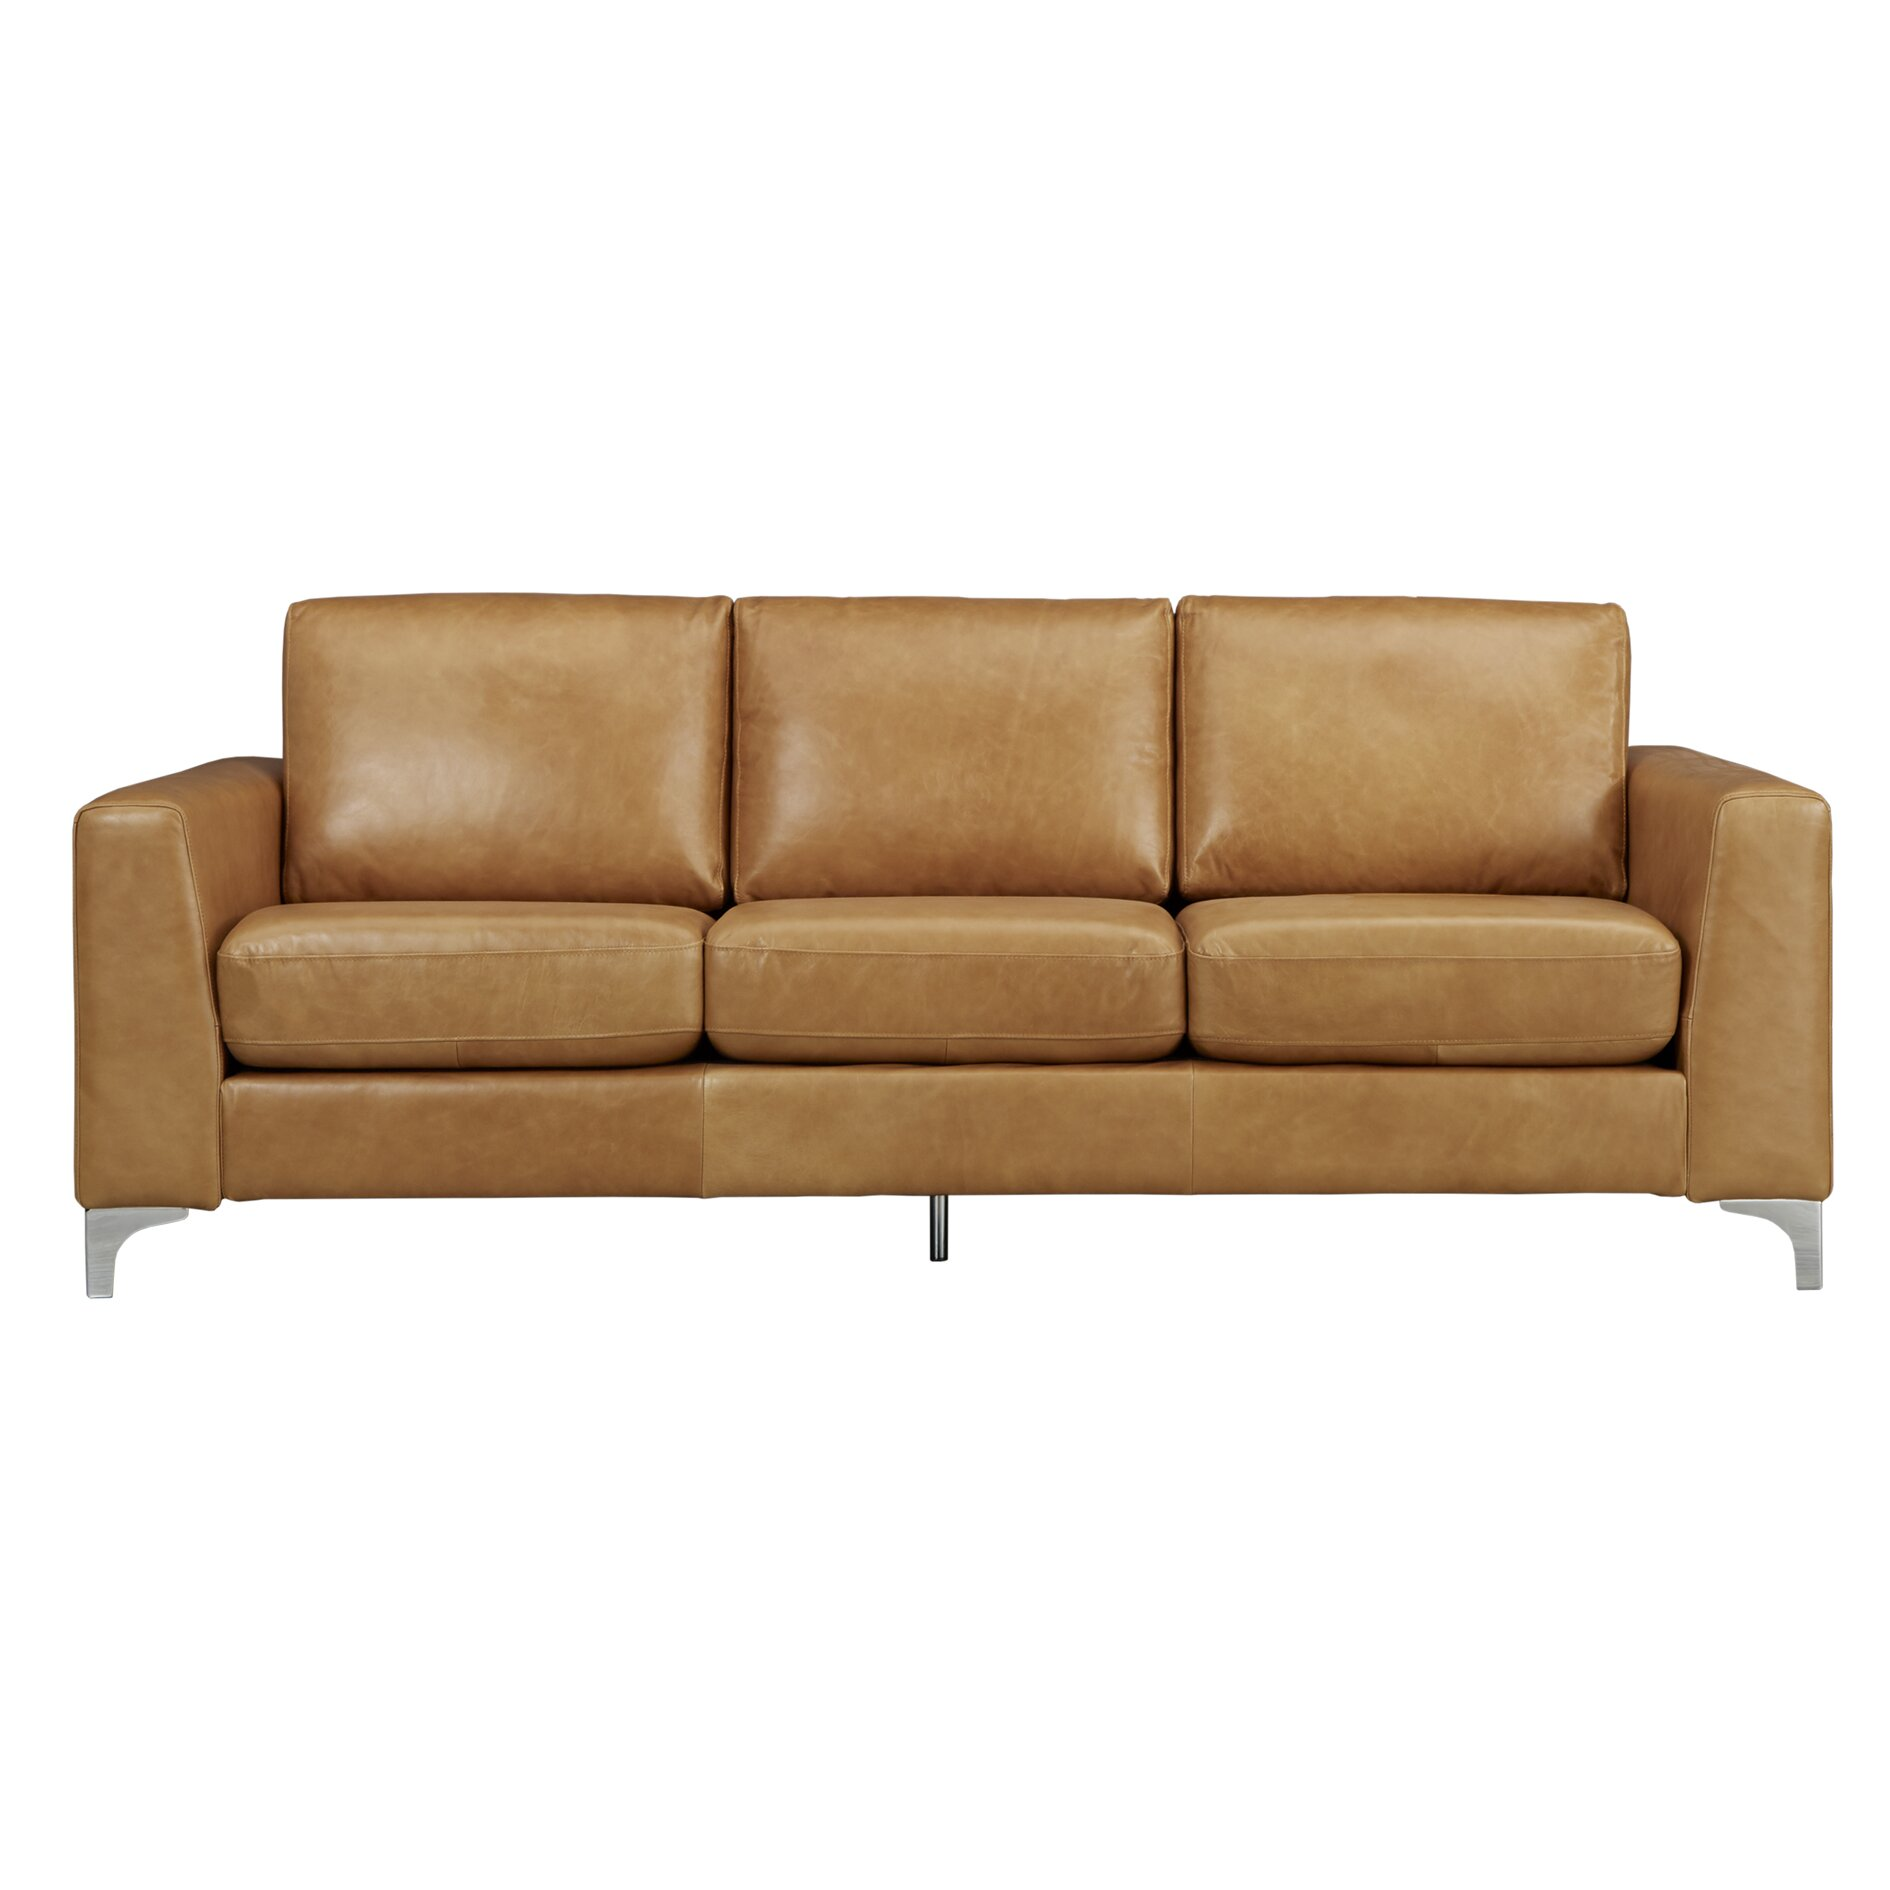 Leather Sectional Sofa Tampa Sofa Review